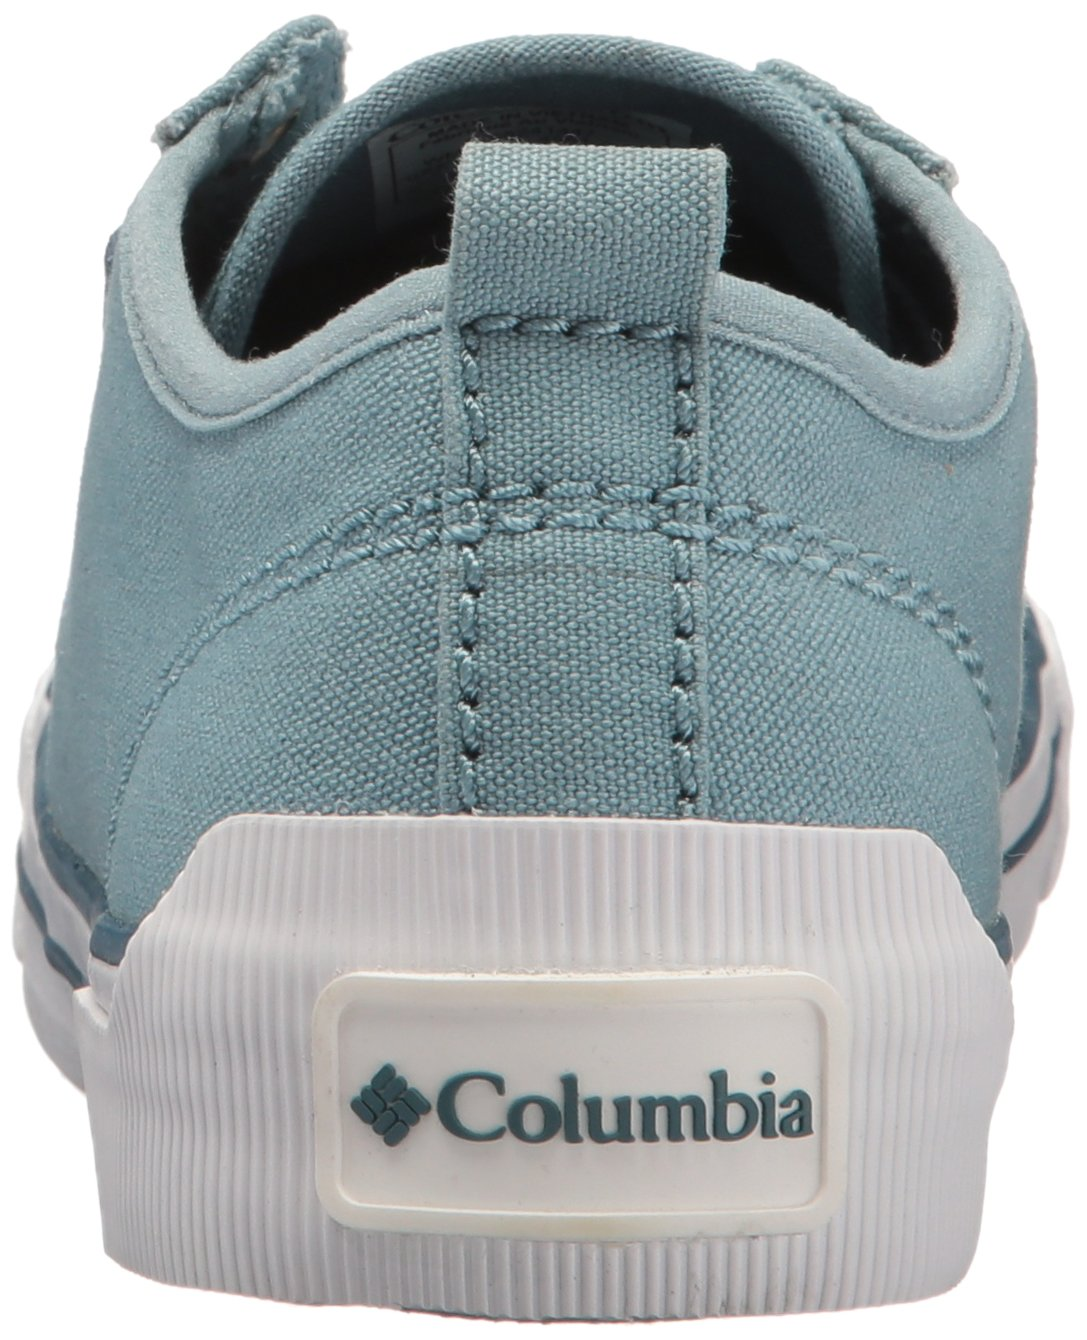 Columbia Women's Goodlife B(M) Lace Sneaker B073RNC18L 6 B(M) Goodlife US|Storm, White d98527